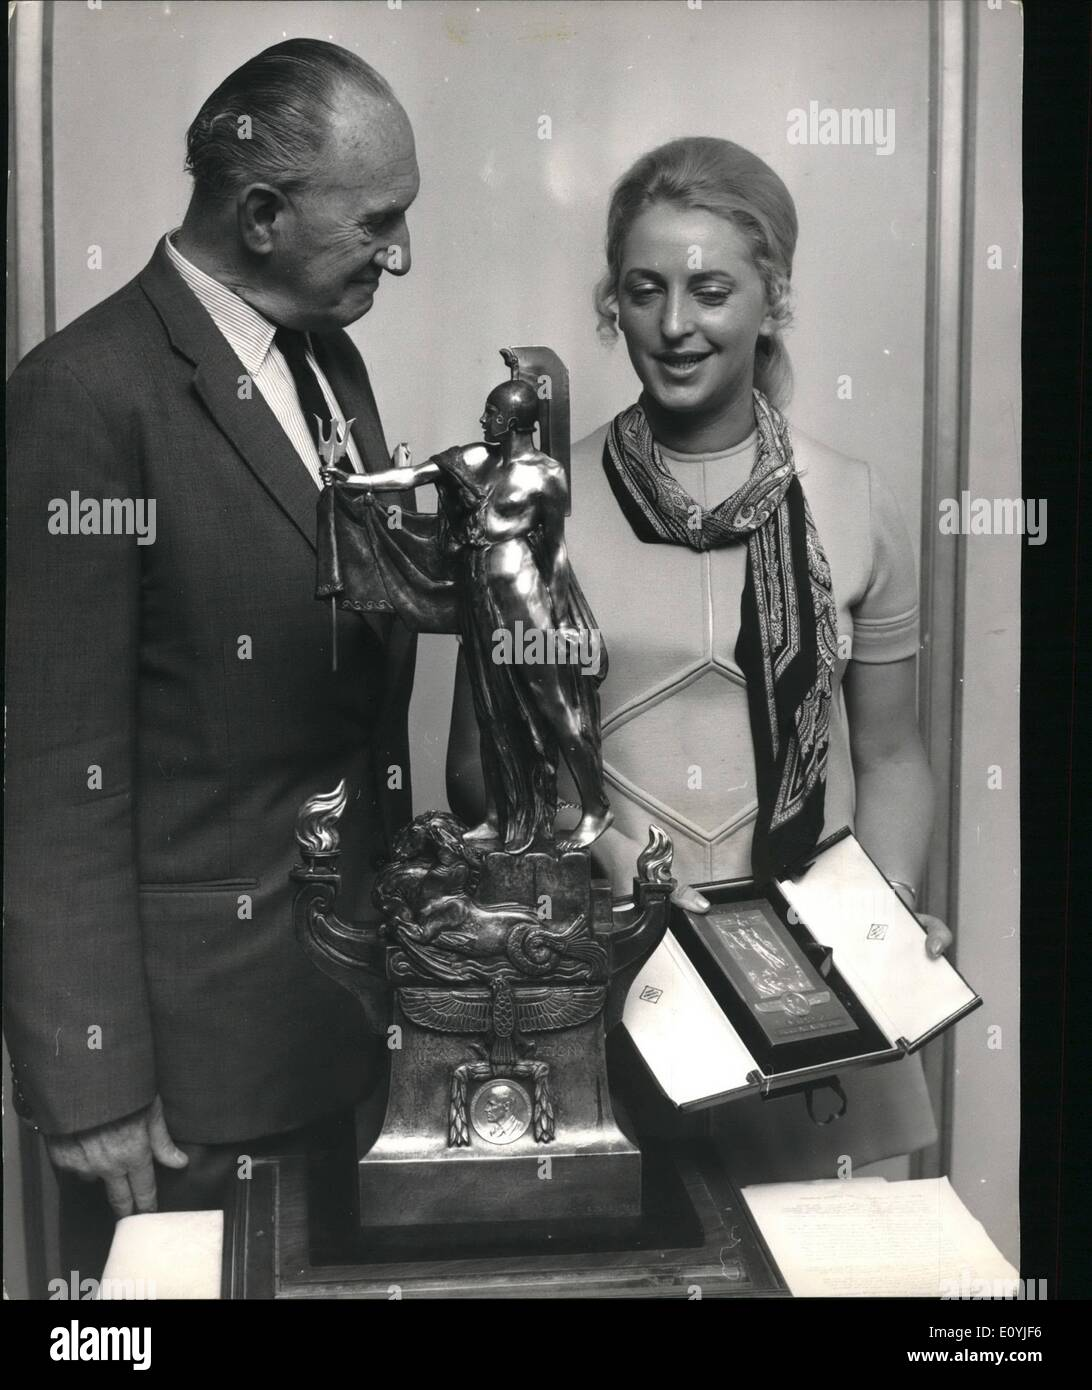 Jul. 07, 1970 - Segrave Trophy Presented To Bruce McLaren's Widow New Zealand Driver Honoured For Outstanding Achievement: Stock Photo